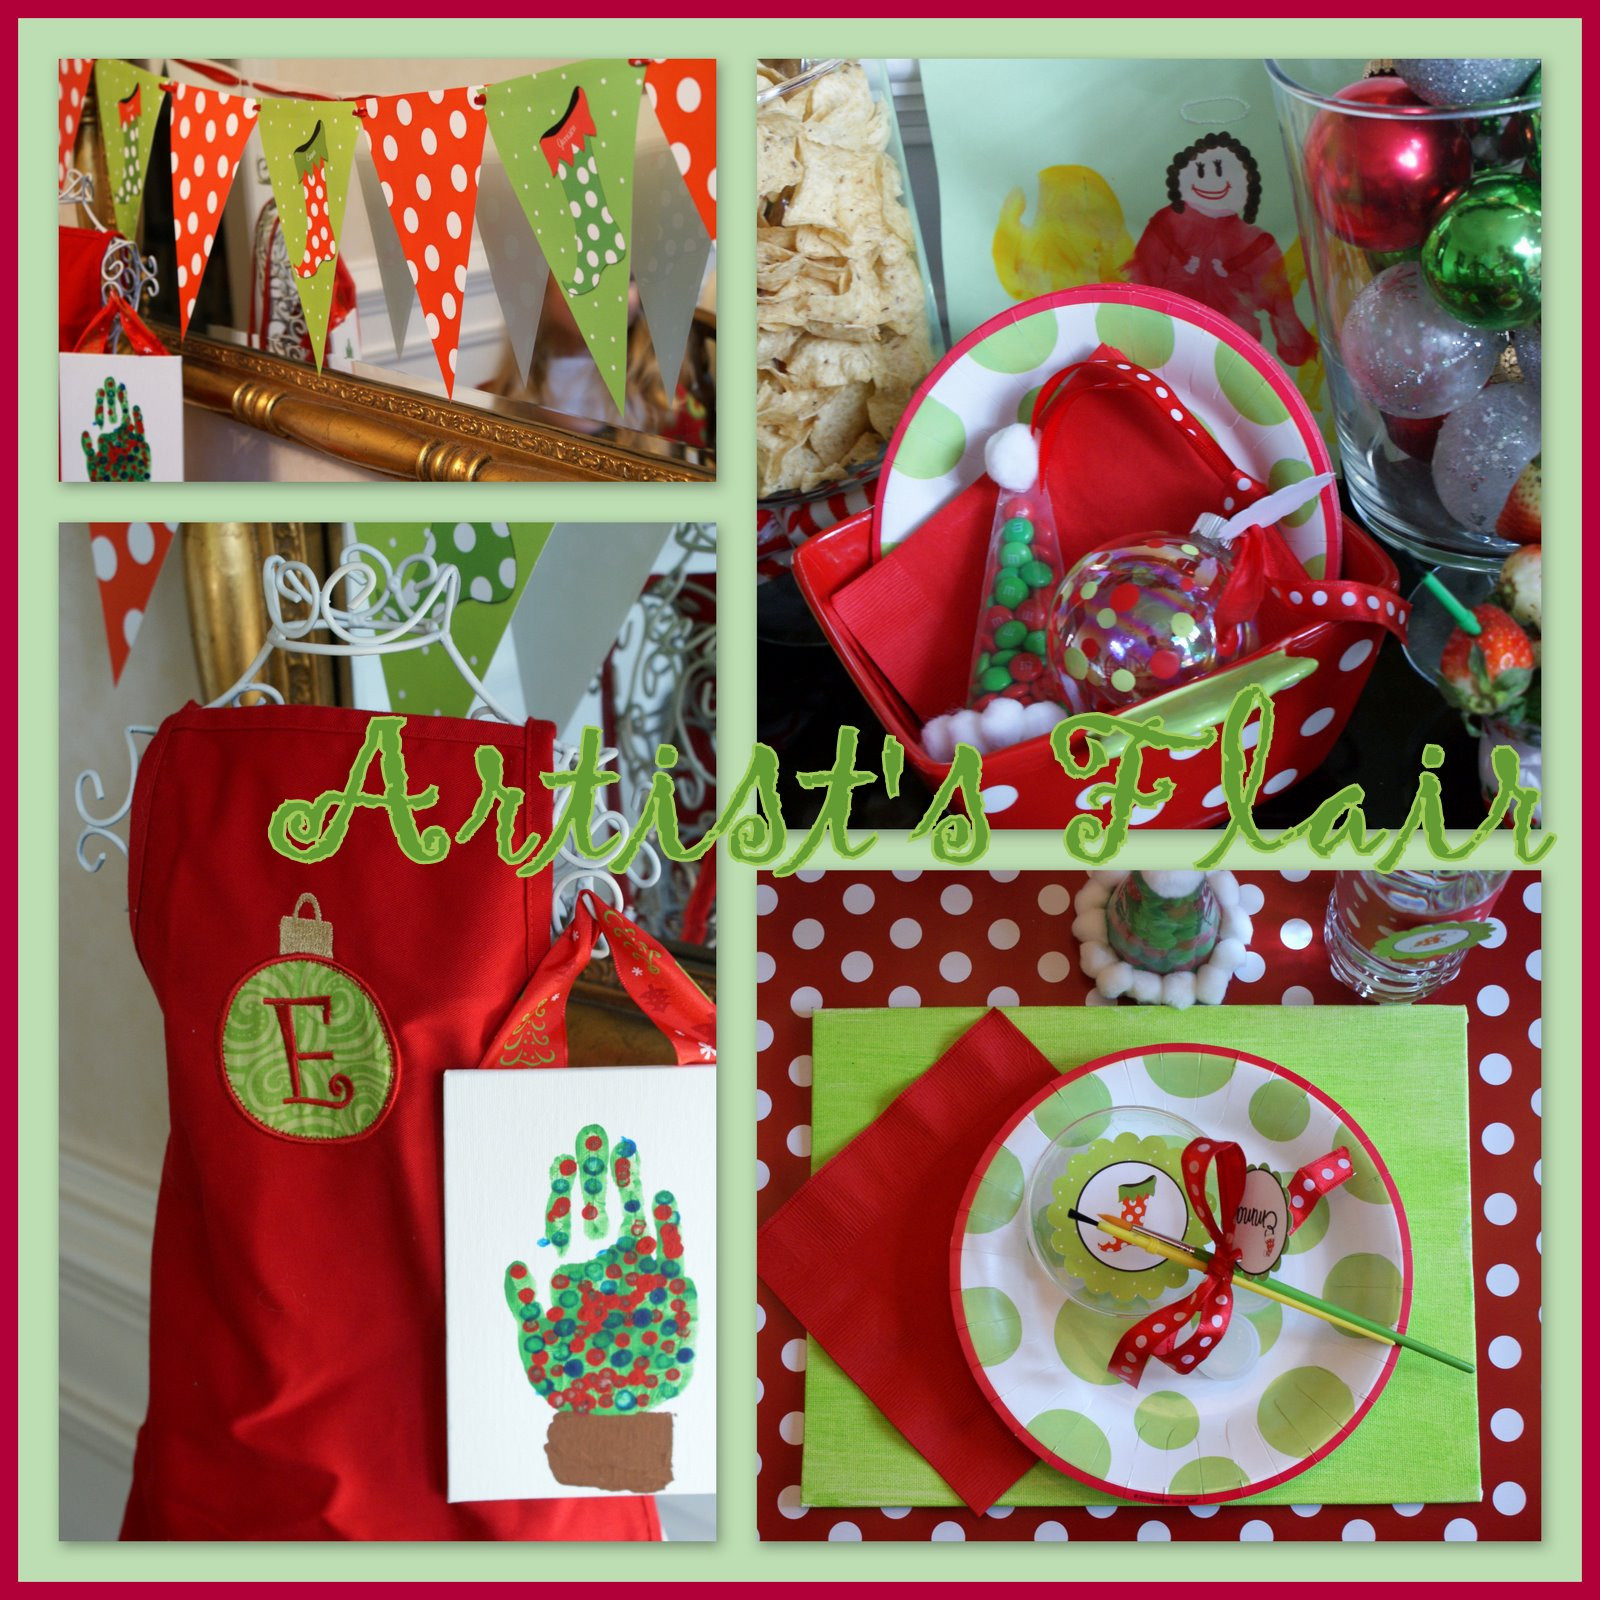 School Christmas Party Ideas  A Little Loveliness Christmas P art y